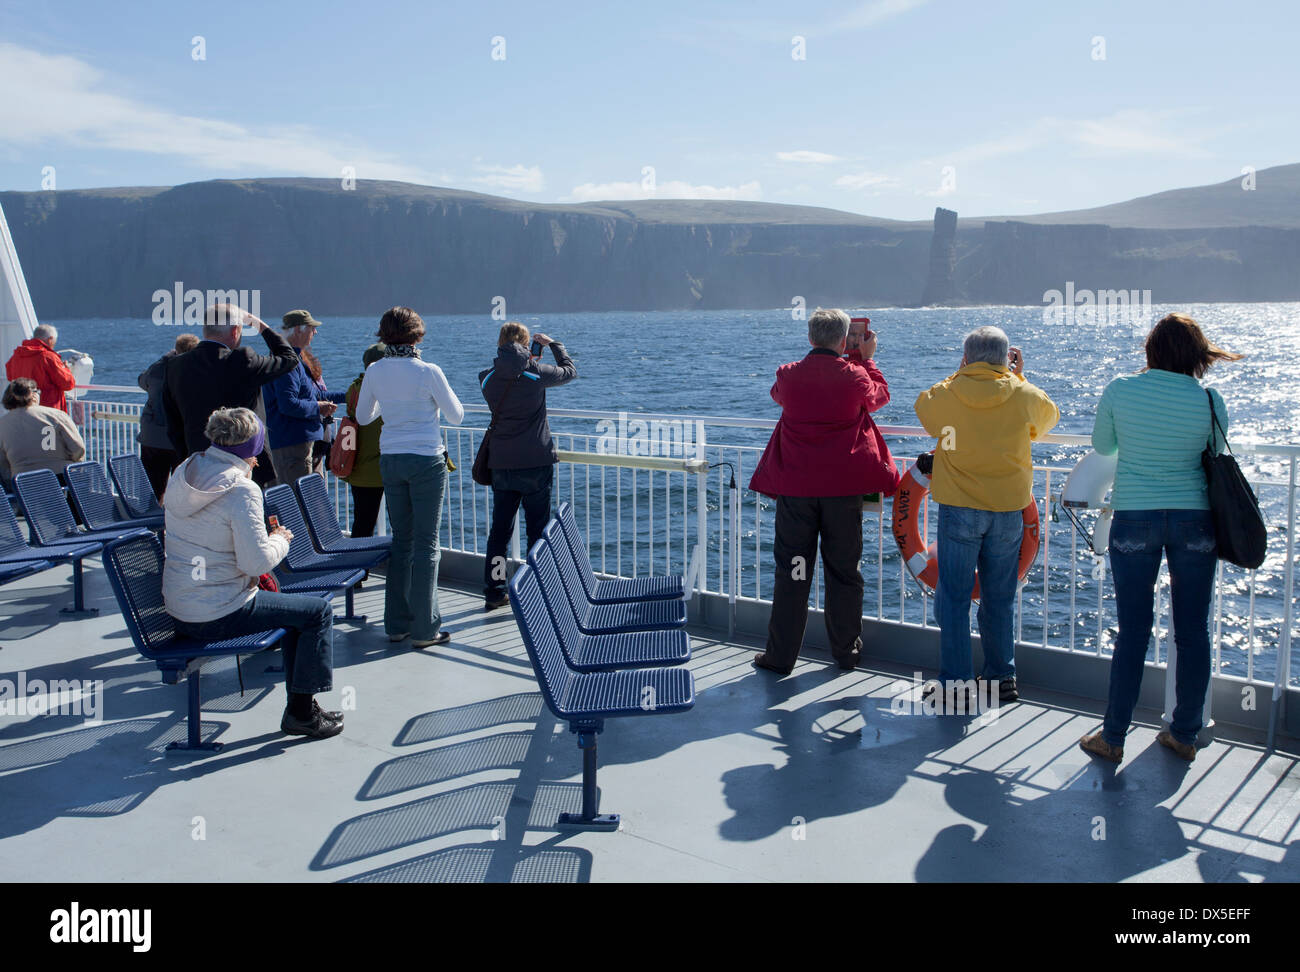 Passengers on MV Hamnavoe taking photographs of the Old Man of Hoy on the ferry trip from Scrabster to Stromness. - Stock Image